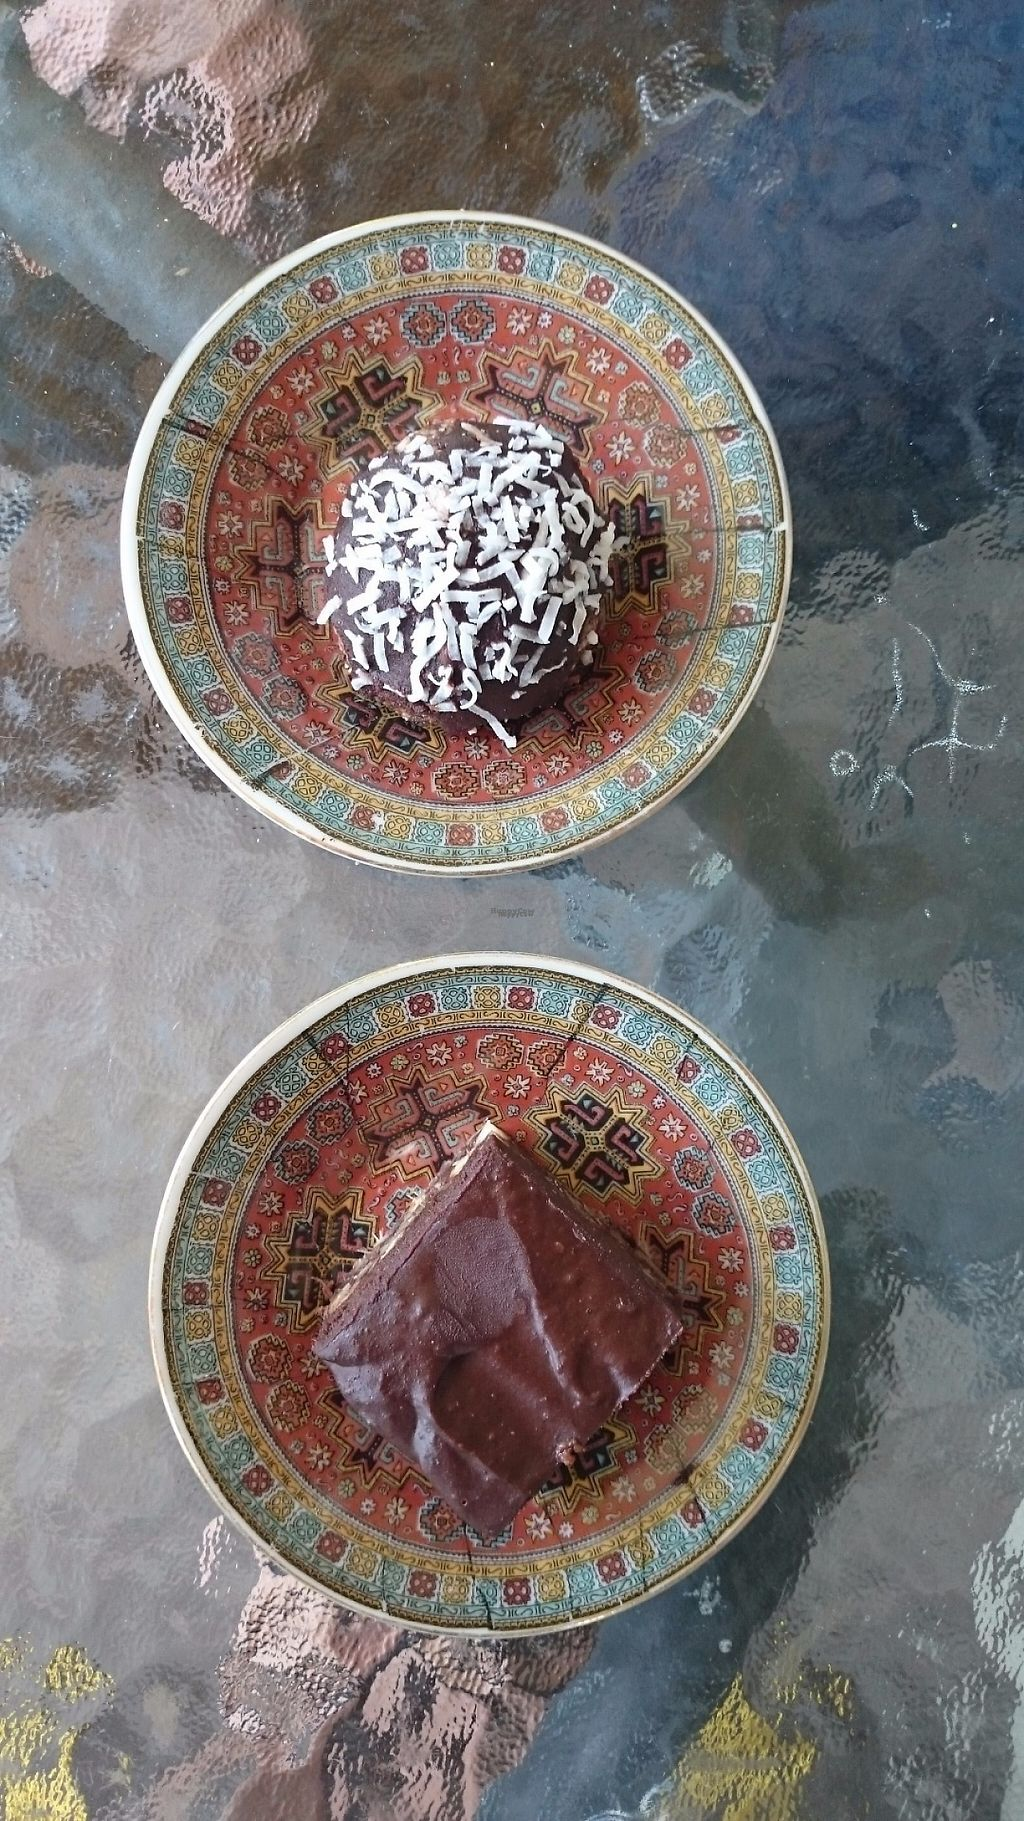 "Photo of Hairy Lentil  by <a href=""/members/profile/Cynthia1998"">Cynthia1998</a> <br/>The raw vegan treats! Top is a St Nic's ball and bottom is musk brownie <br/> December 8, 2016  - <a href='/contact/abuse/image/78486/198144'>Report</a>"